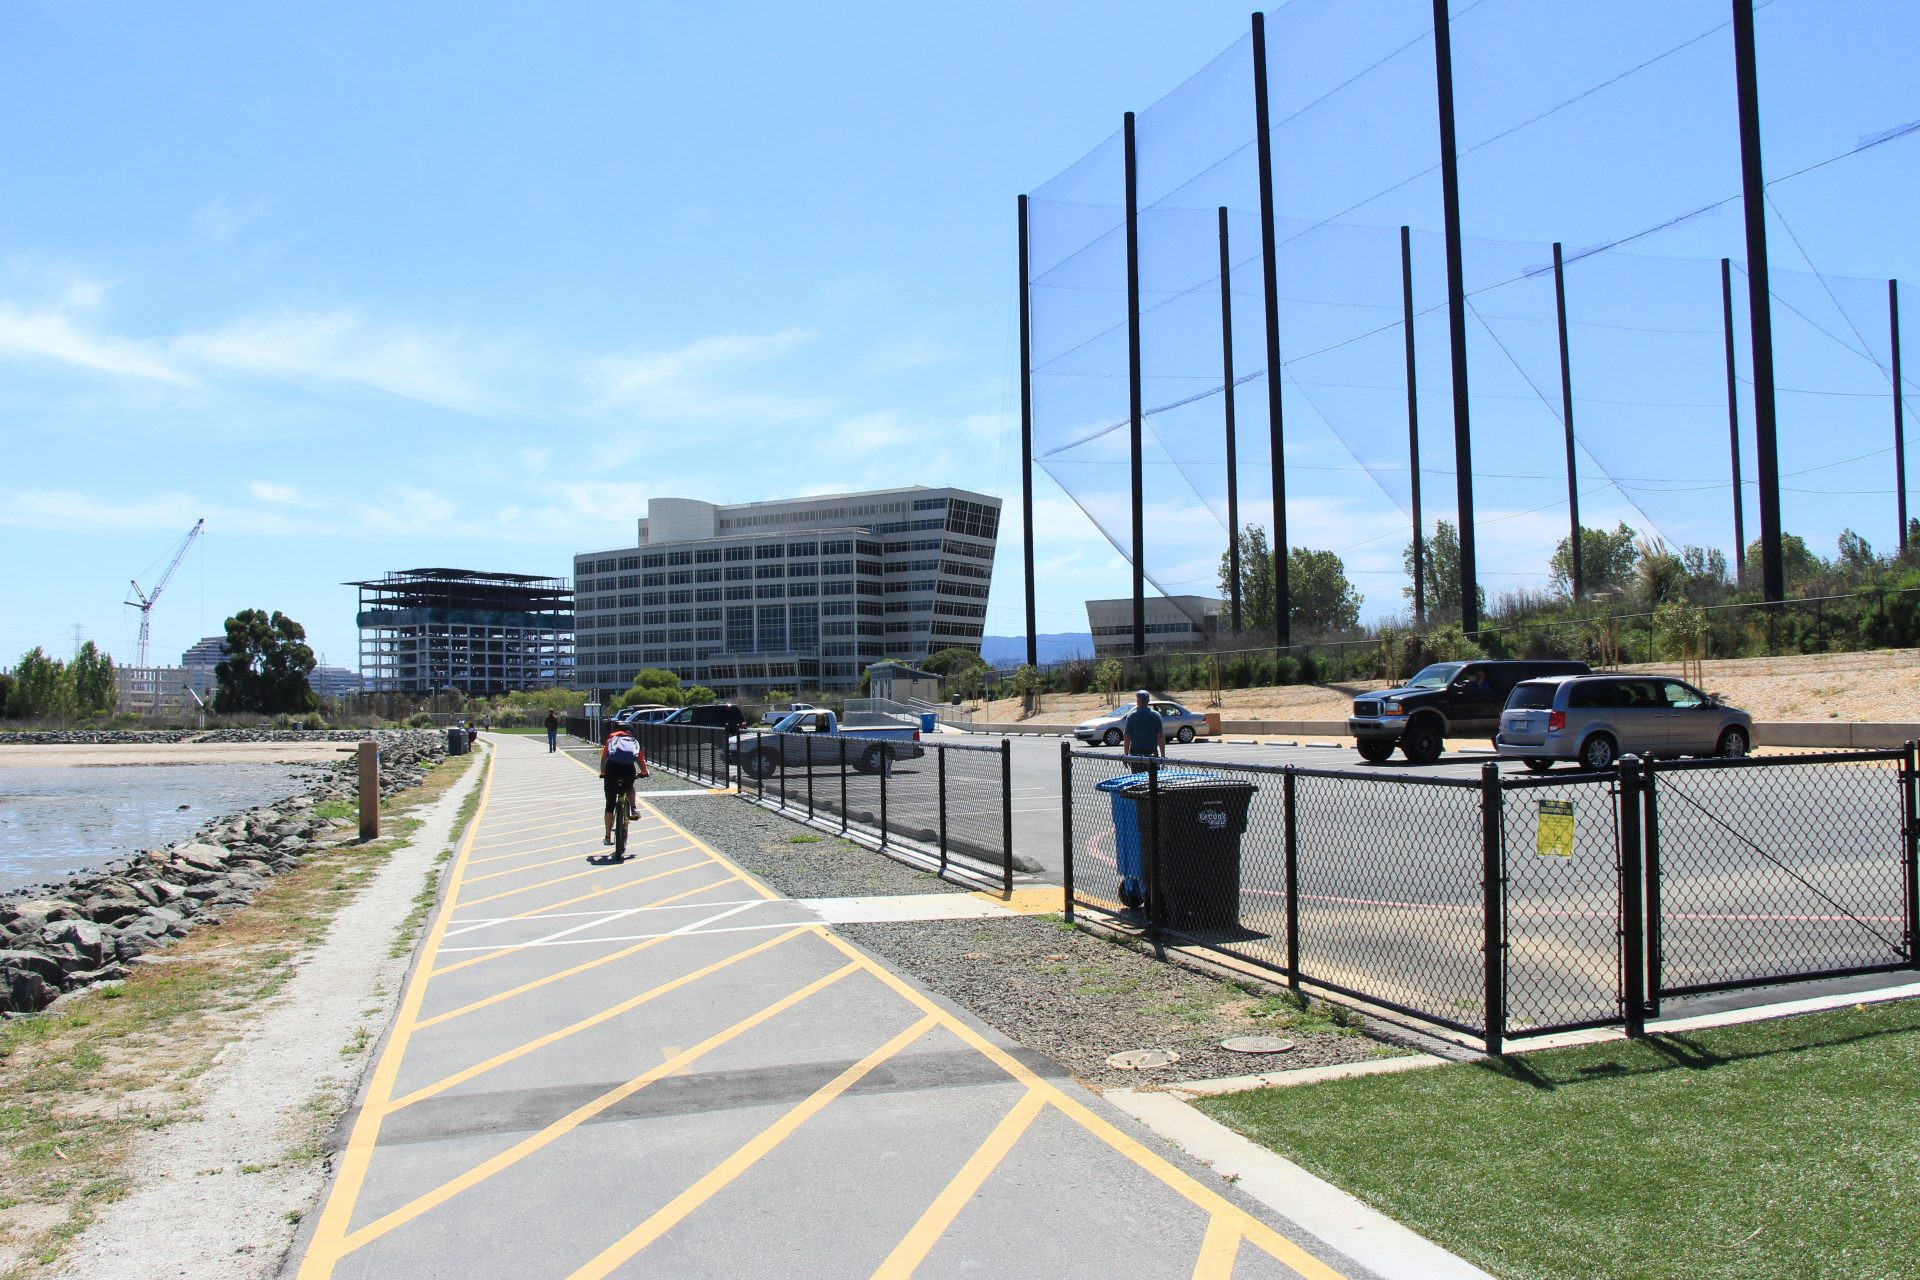 Bicyclist on path alongside fence, with parking lot and driving range beyond